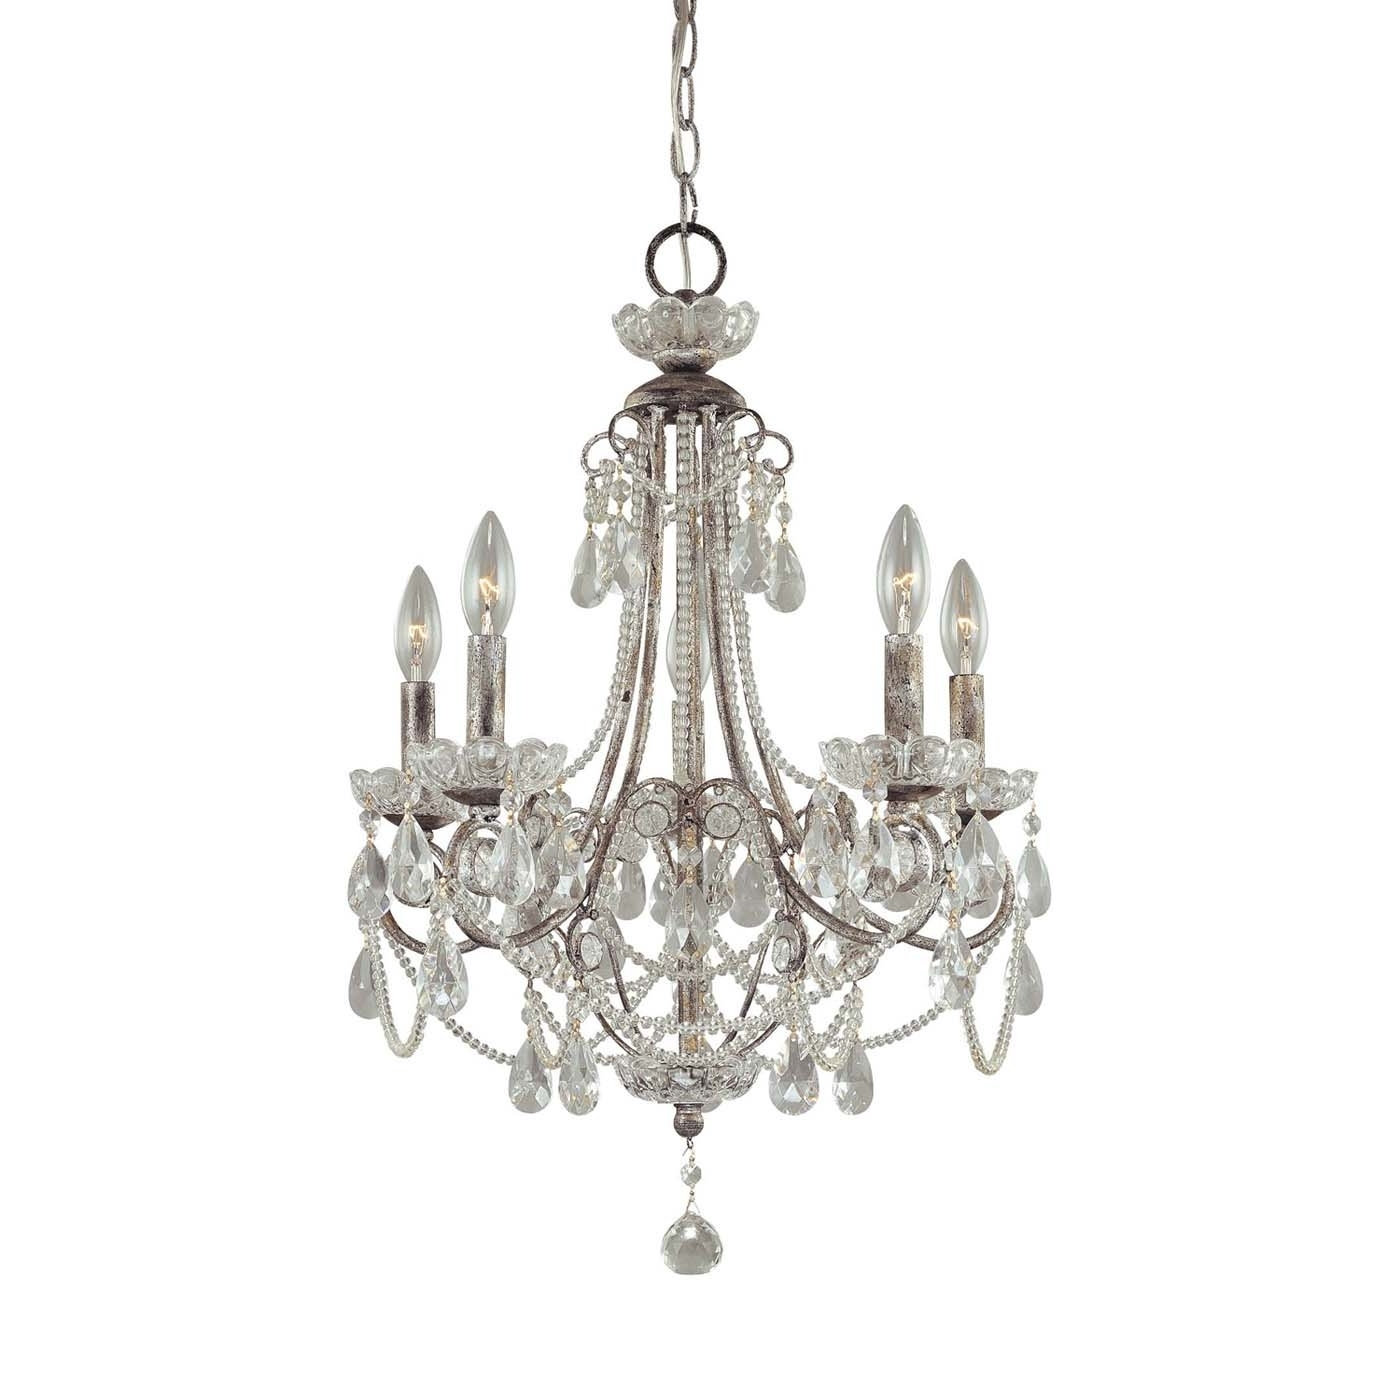 Preferred 4 Light Crystal Chandeliers For Chandelier: Extraordinary Small Chandeliers For Bedrooms Mini (View 12 of 20)